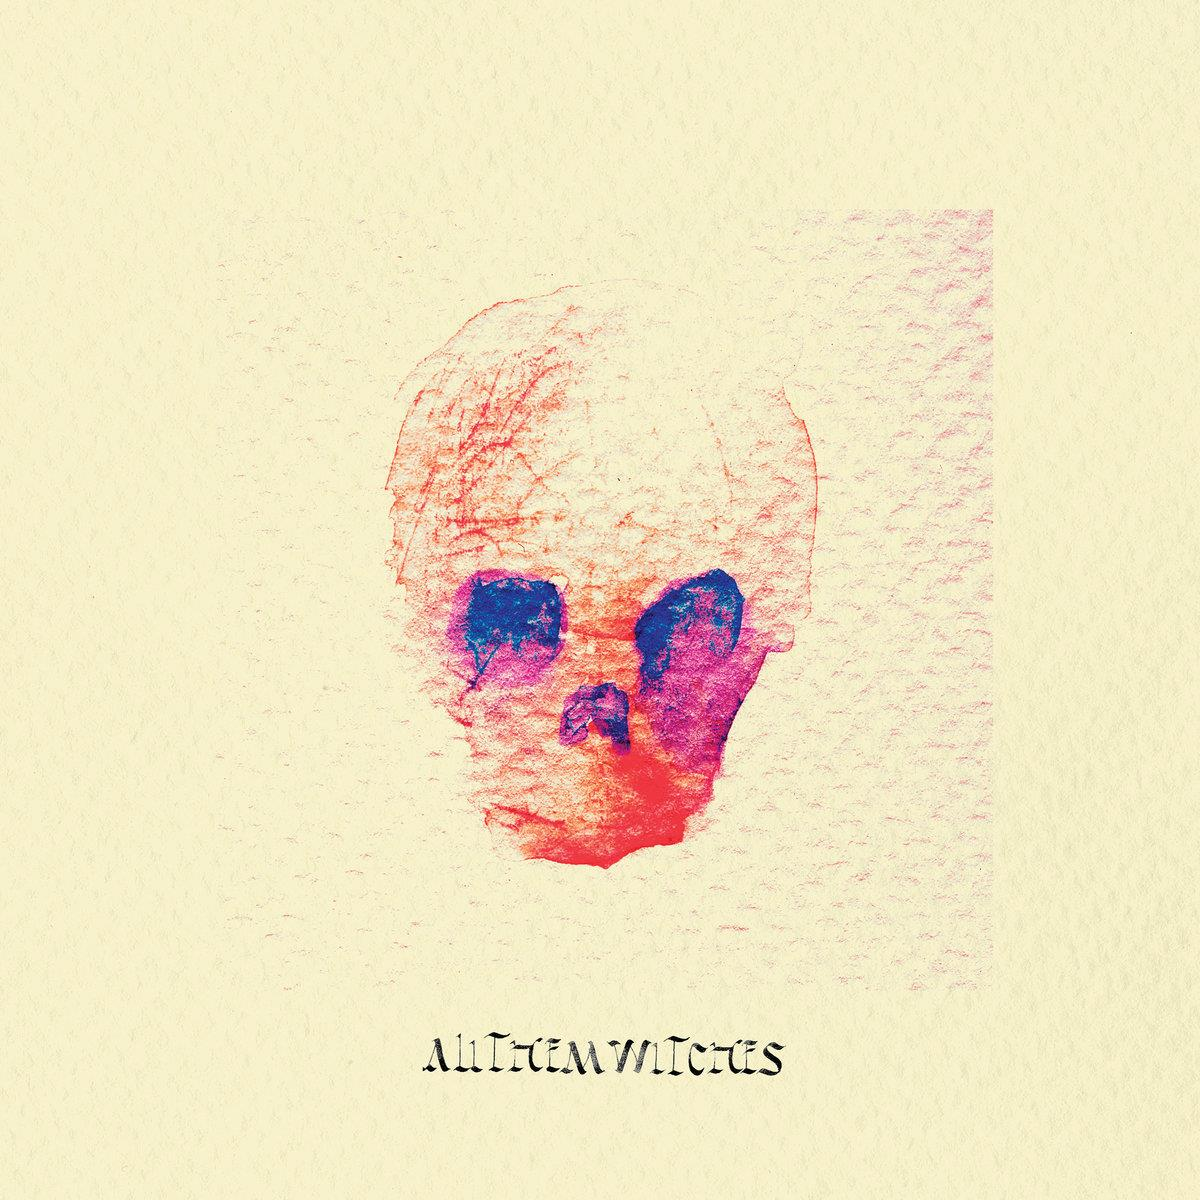 All Them Witches - ATW [2xLP]